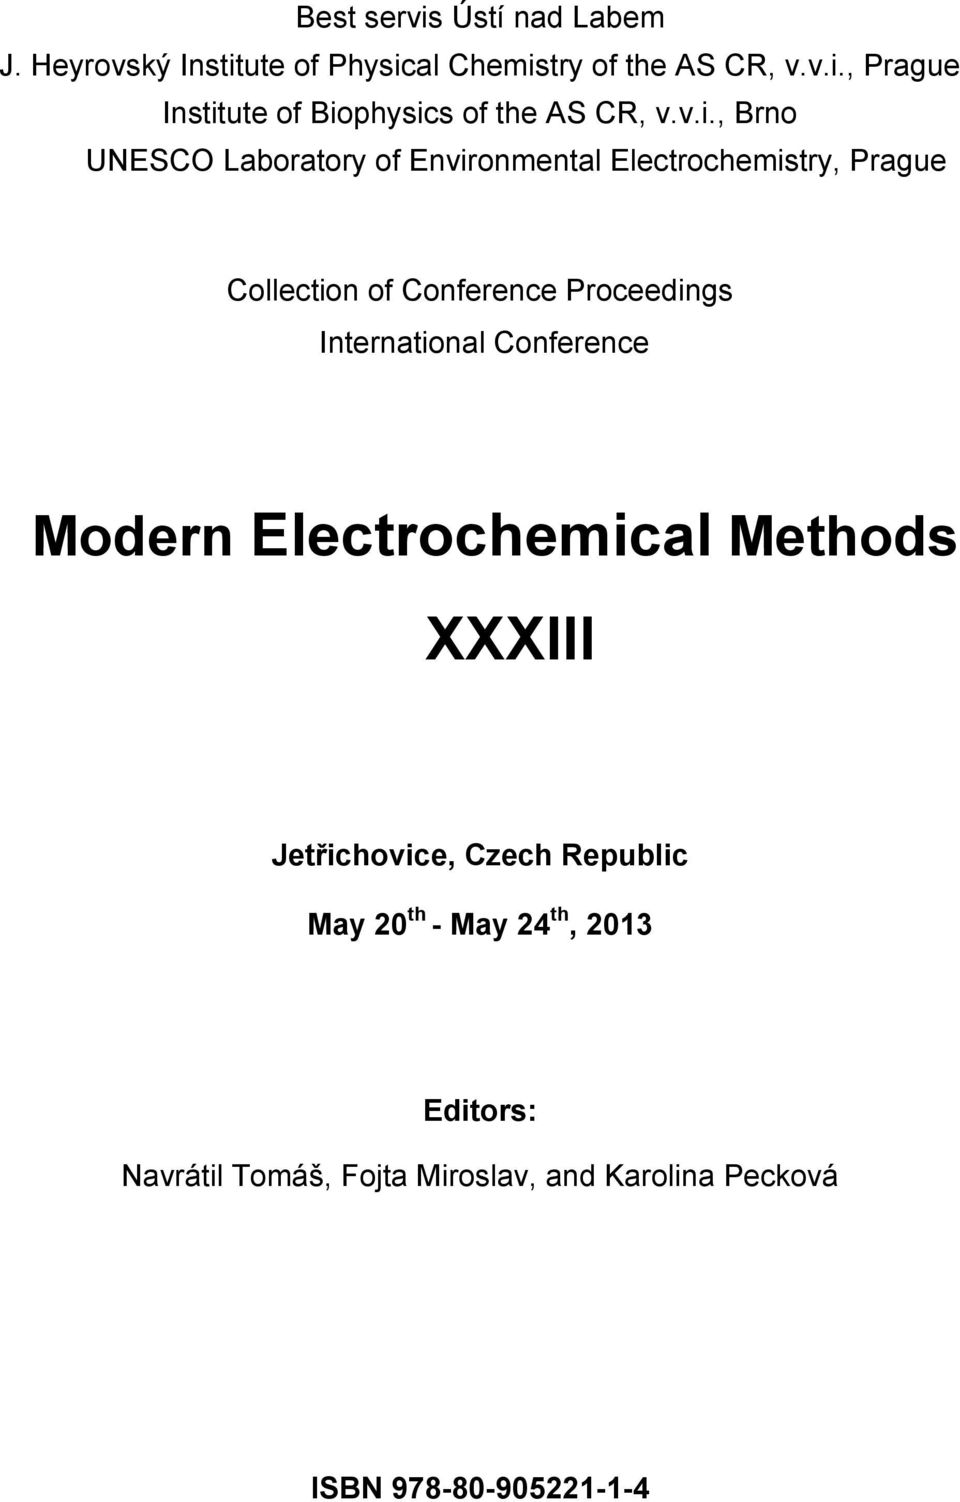 International Conference Modern Electrochemical Methods XXXIII Jetřichovice, Czech Republic May 20 th - May 24